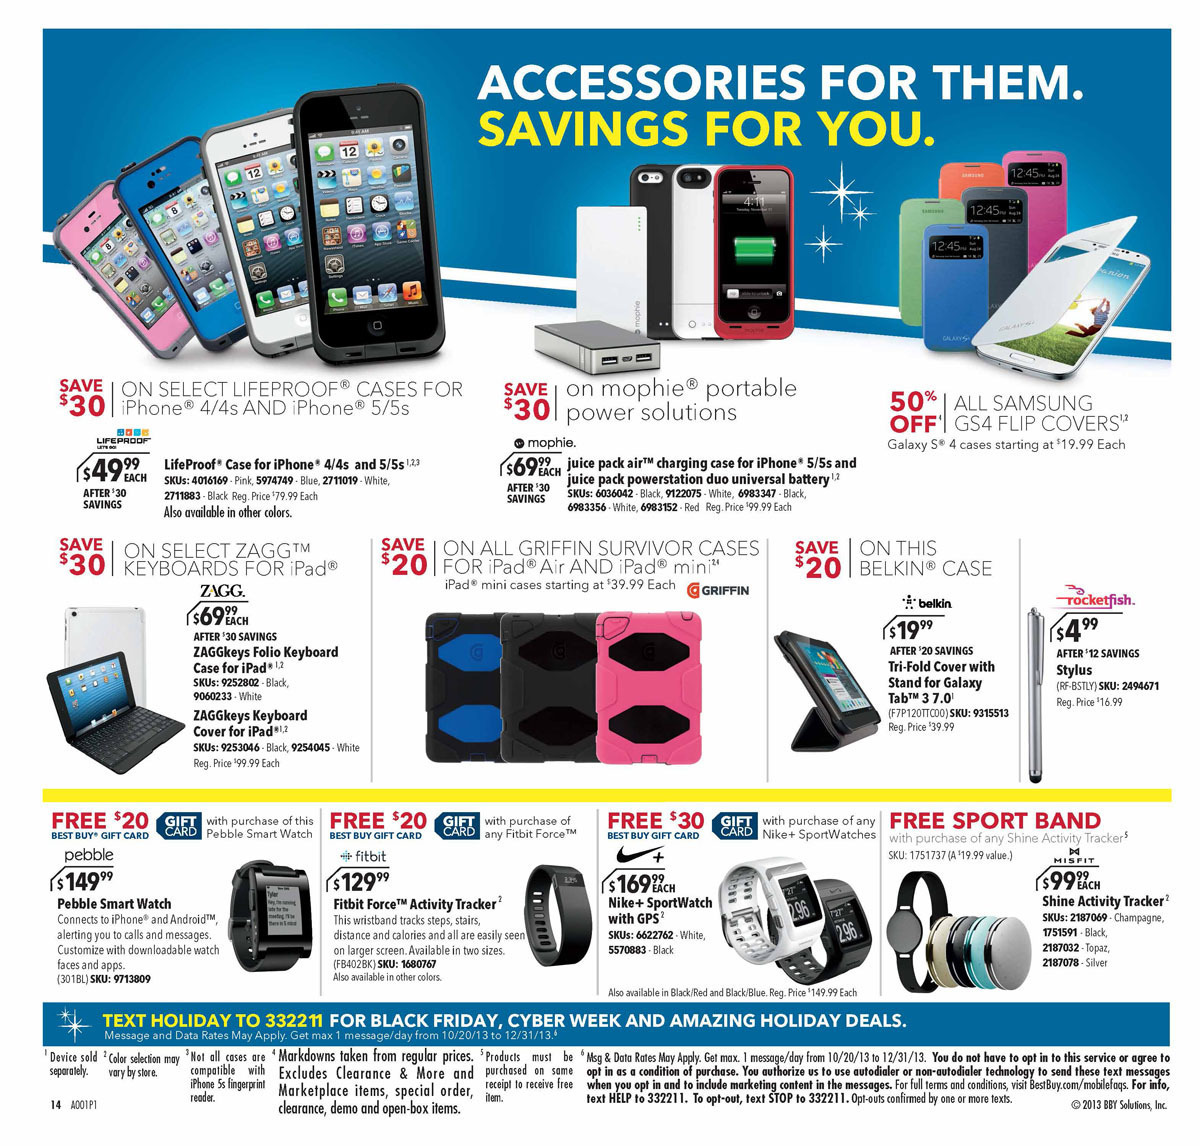 BestBuy_blackfriday2013_14